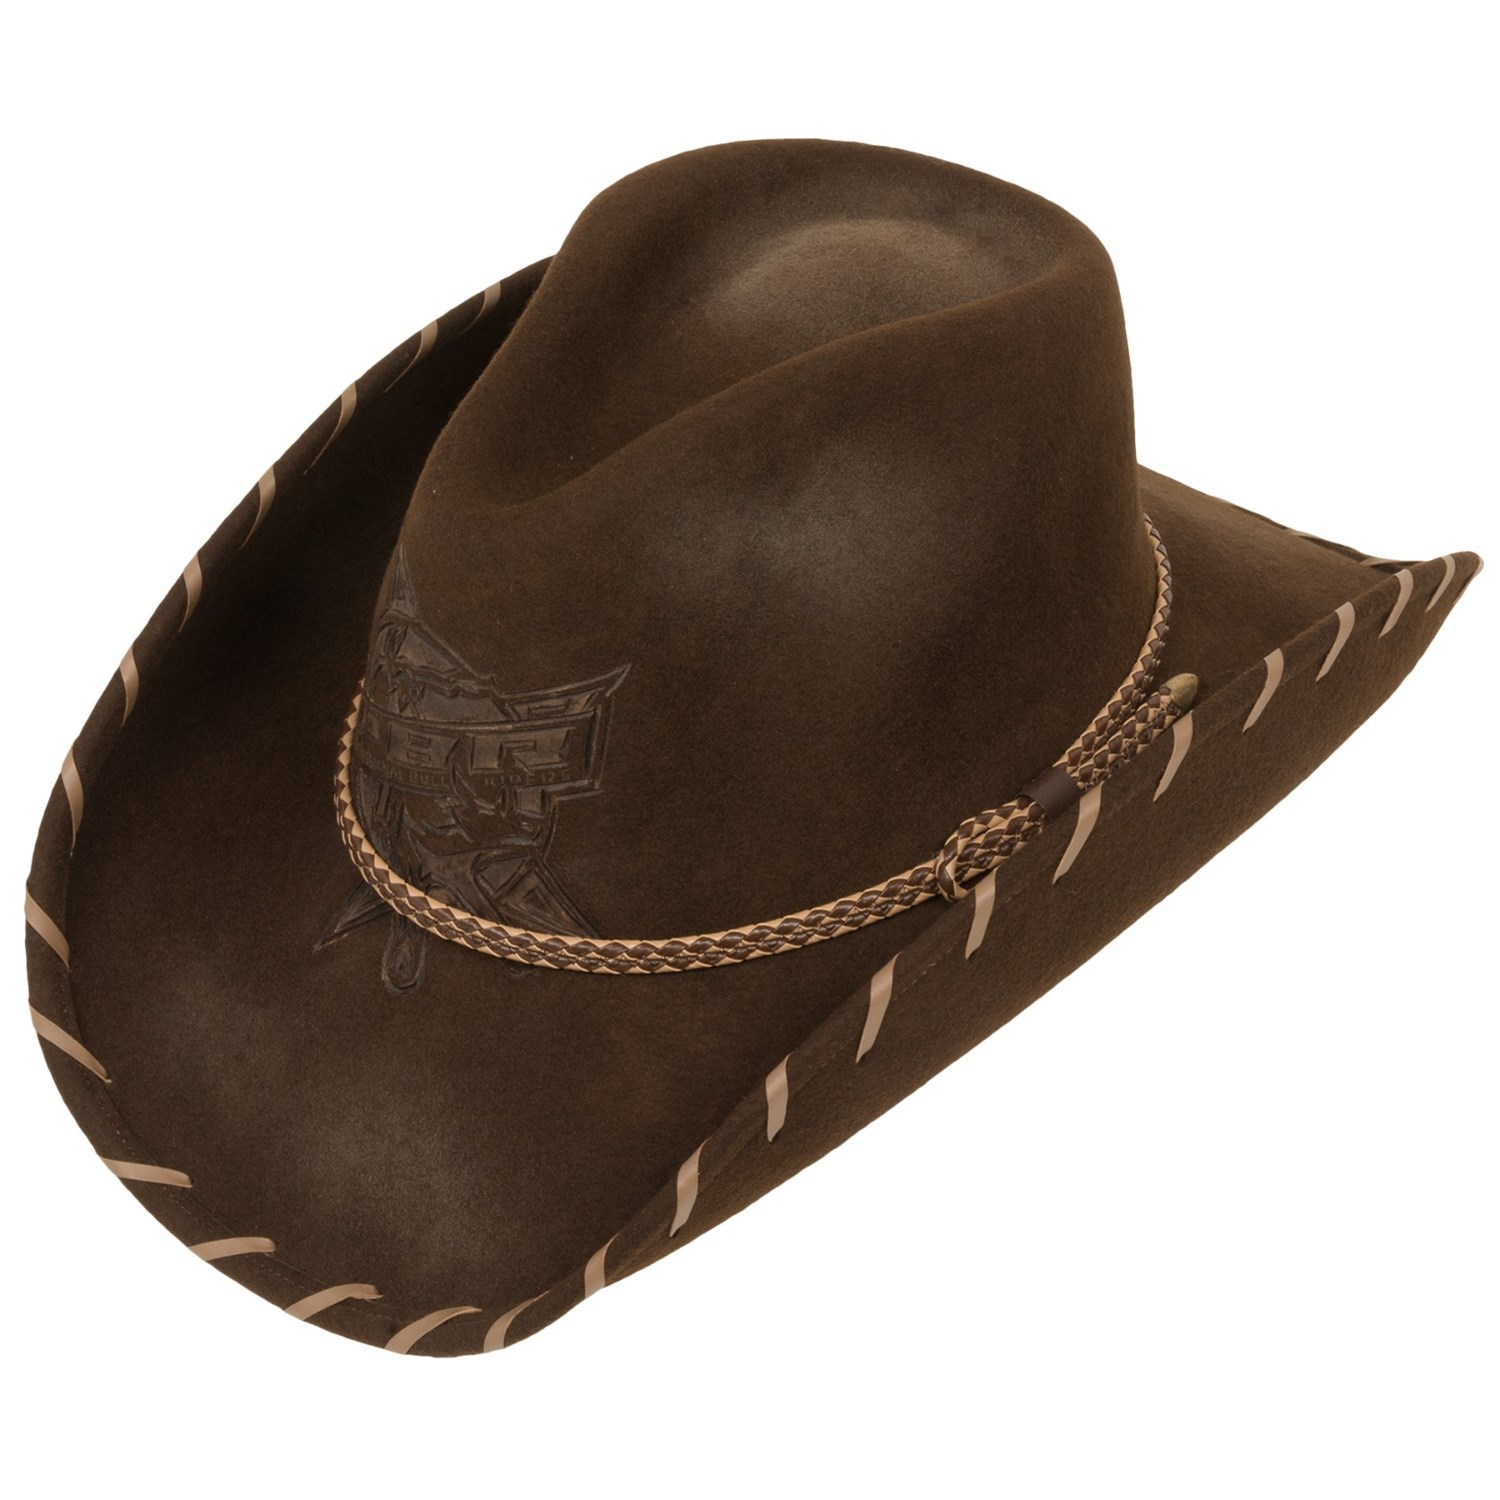 2a40adea89f58 Top 10 Best Western Hats For Men Felt Felt Cowboy Hats For Men  Resistol  PBR Challenger Cowboy Hat